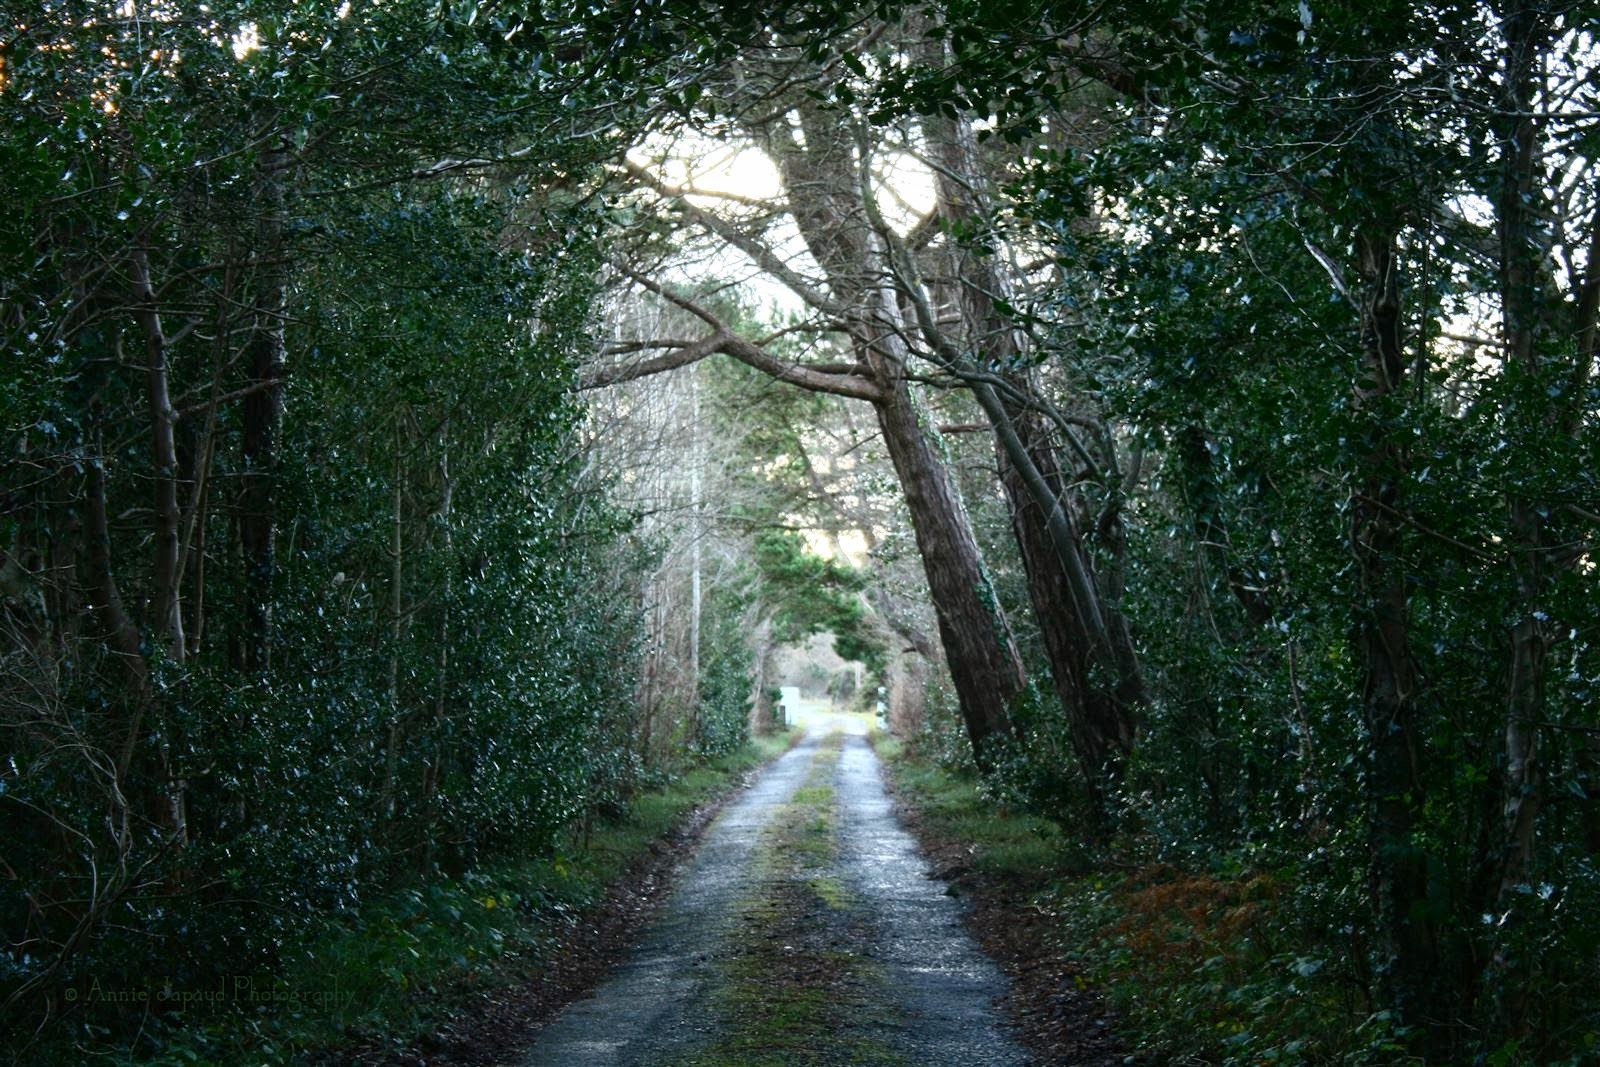 image of a road surrounded by pine trees